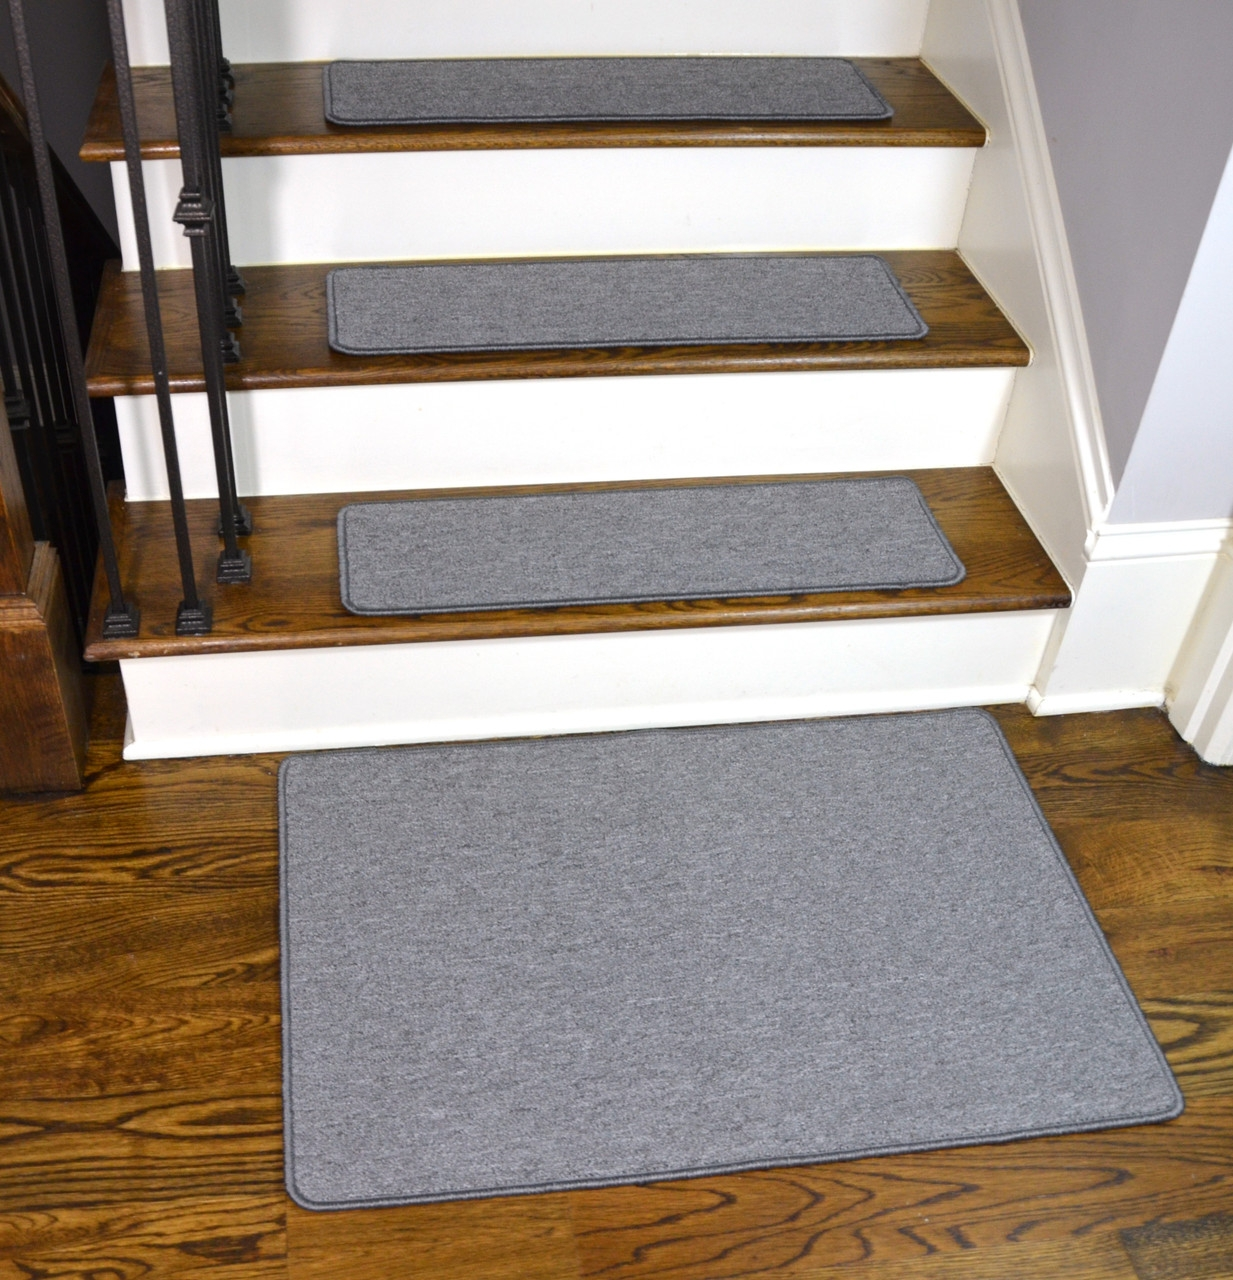 Limestone Gray Washable Stair Treads With Landing Mat | Gray Carpet Stair Treads | Black | Set | Wood | Grey Patterned | Fitting Loop Pile Carpet